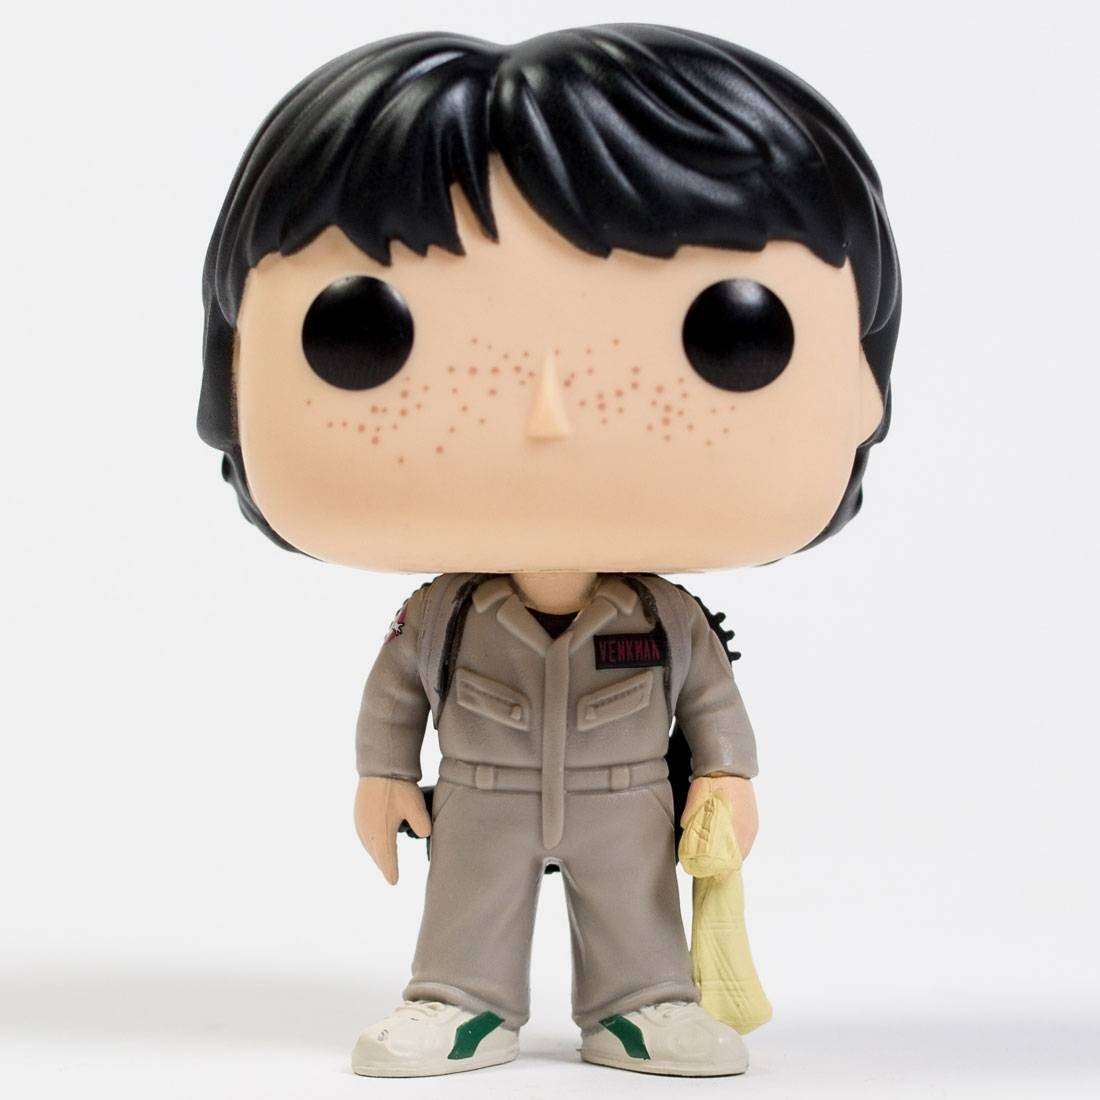 Funko: Stranger Things Pop! Television figures related to Ghostbusters